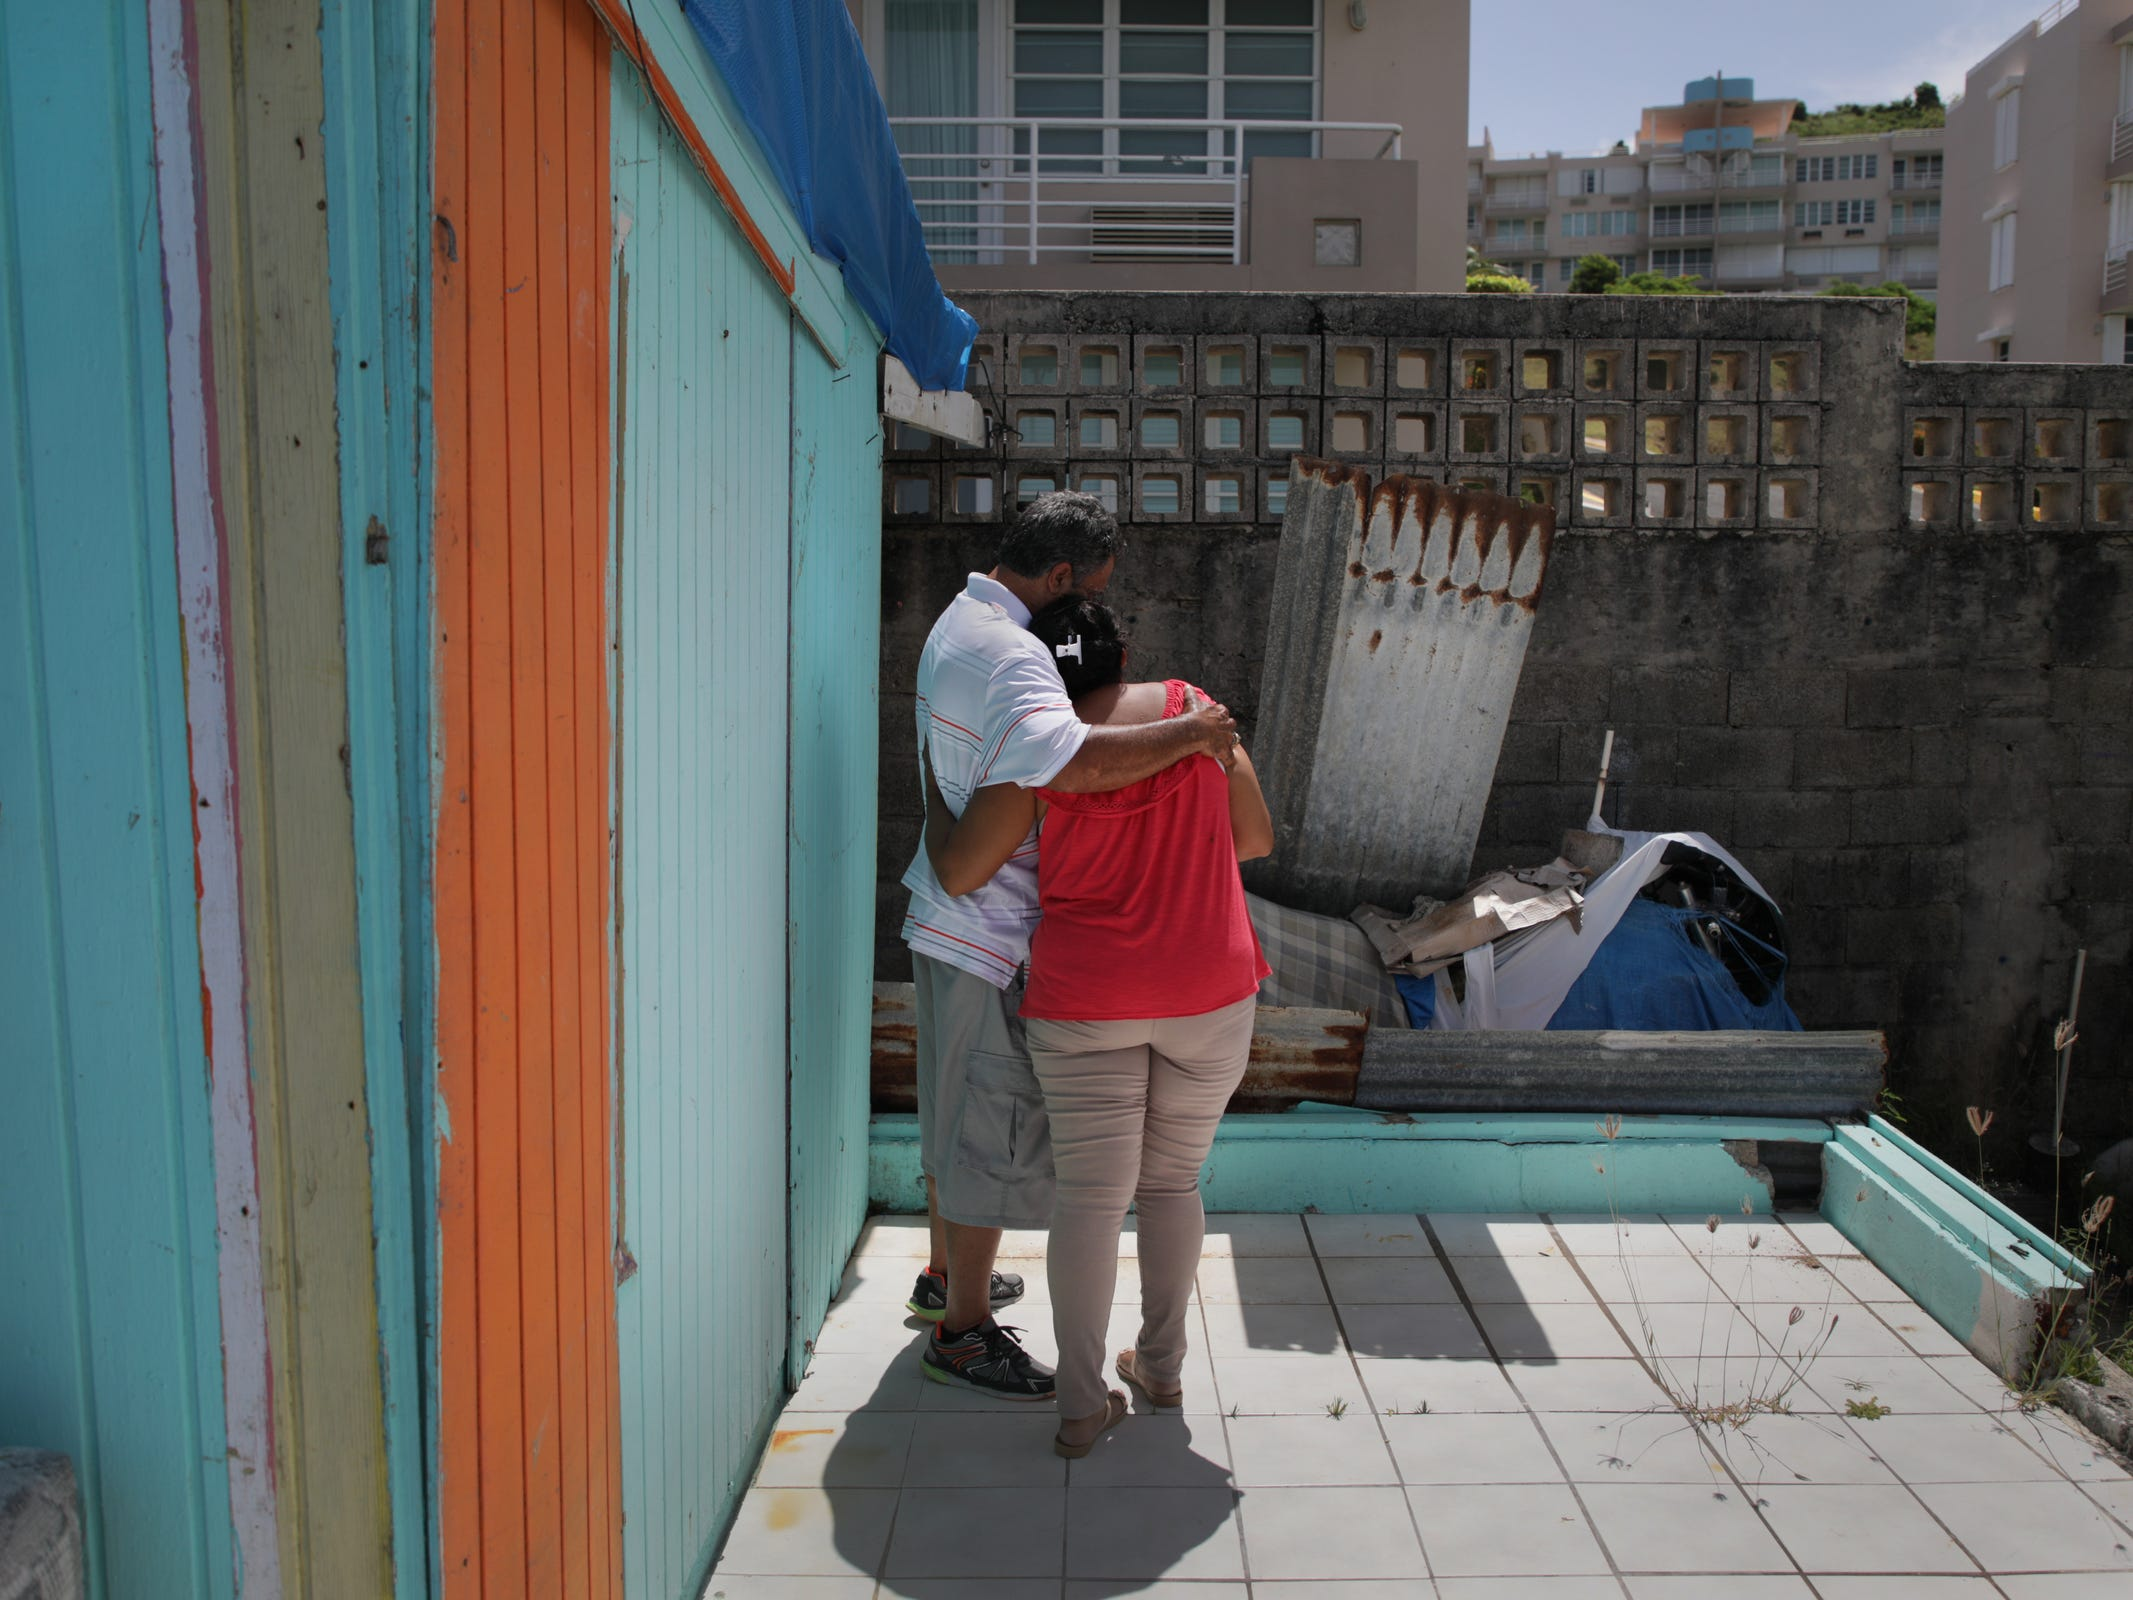 Luz Delgado comforts her husband Eleobadis Delgado after he became emotional while talking about the hardships he and fellow Puerto Ricans are experiencing physically and emotionally since Hurricane Maria devastated the island ten months prior.